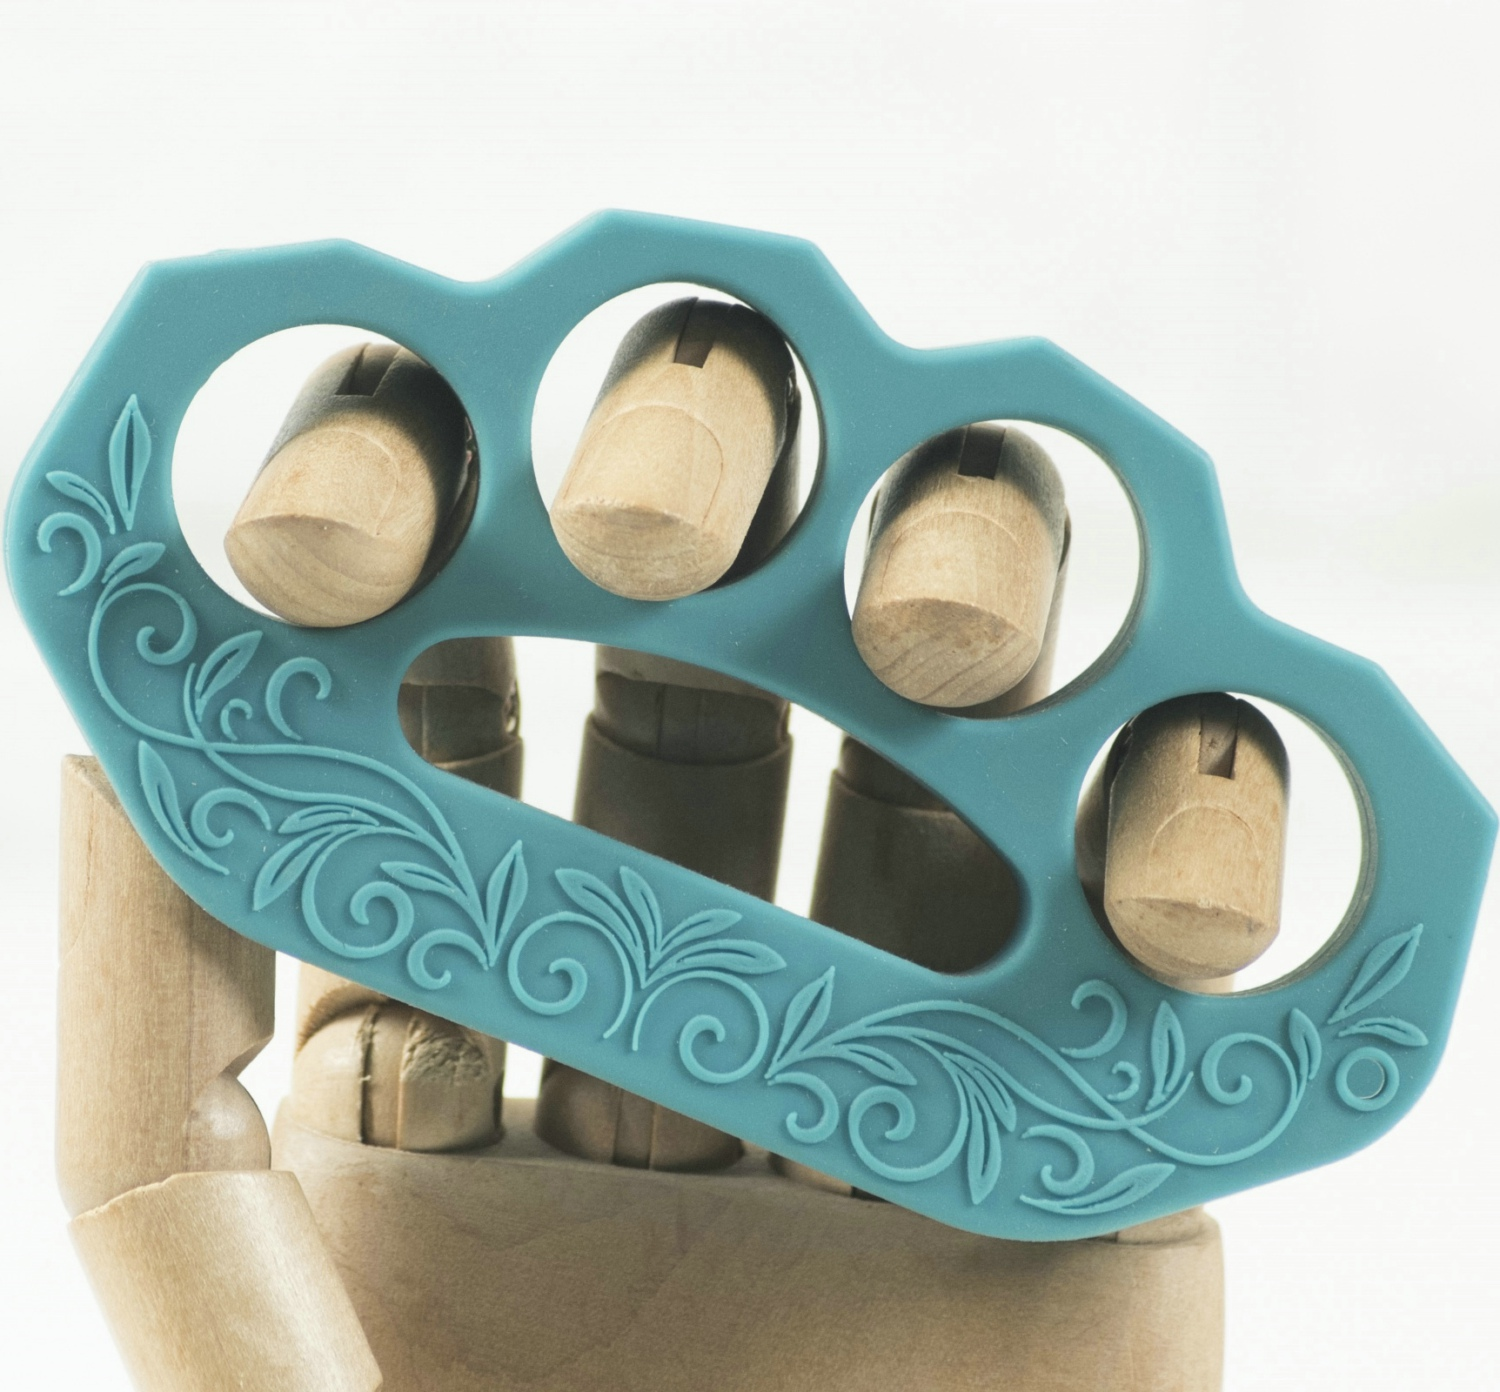 Yeduo Finger Protector 创意产品